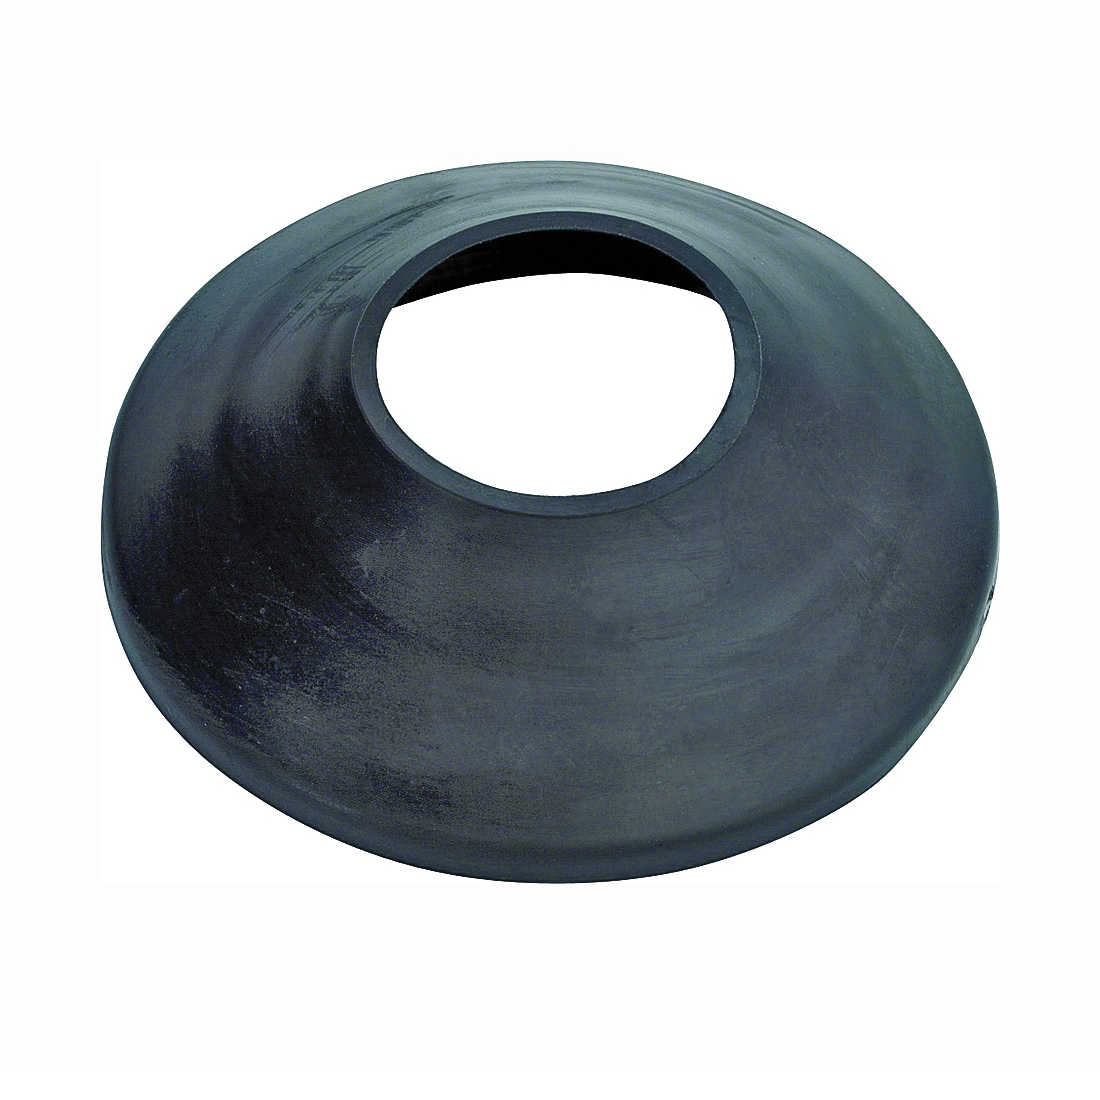 Picture of Oatey 14207 Rain Collar, 3 in Vent Hole, Rubber